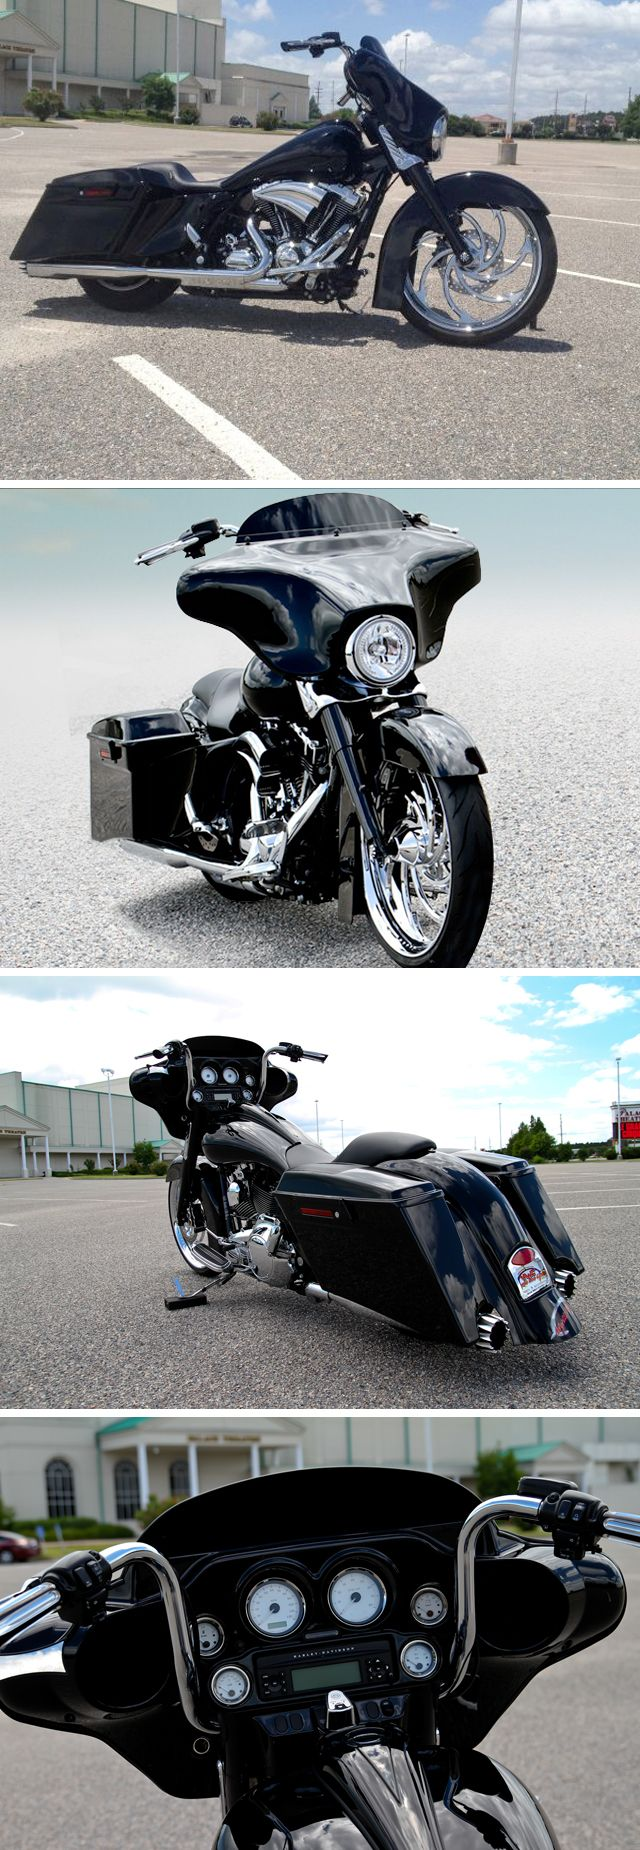 "Image Detail for - 2009 Harley Davidson FLHX Street Glide 23"" front wheel CUSTOM! - $ ..."